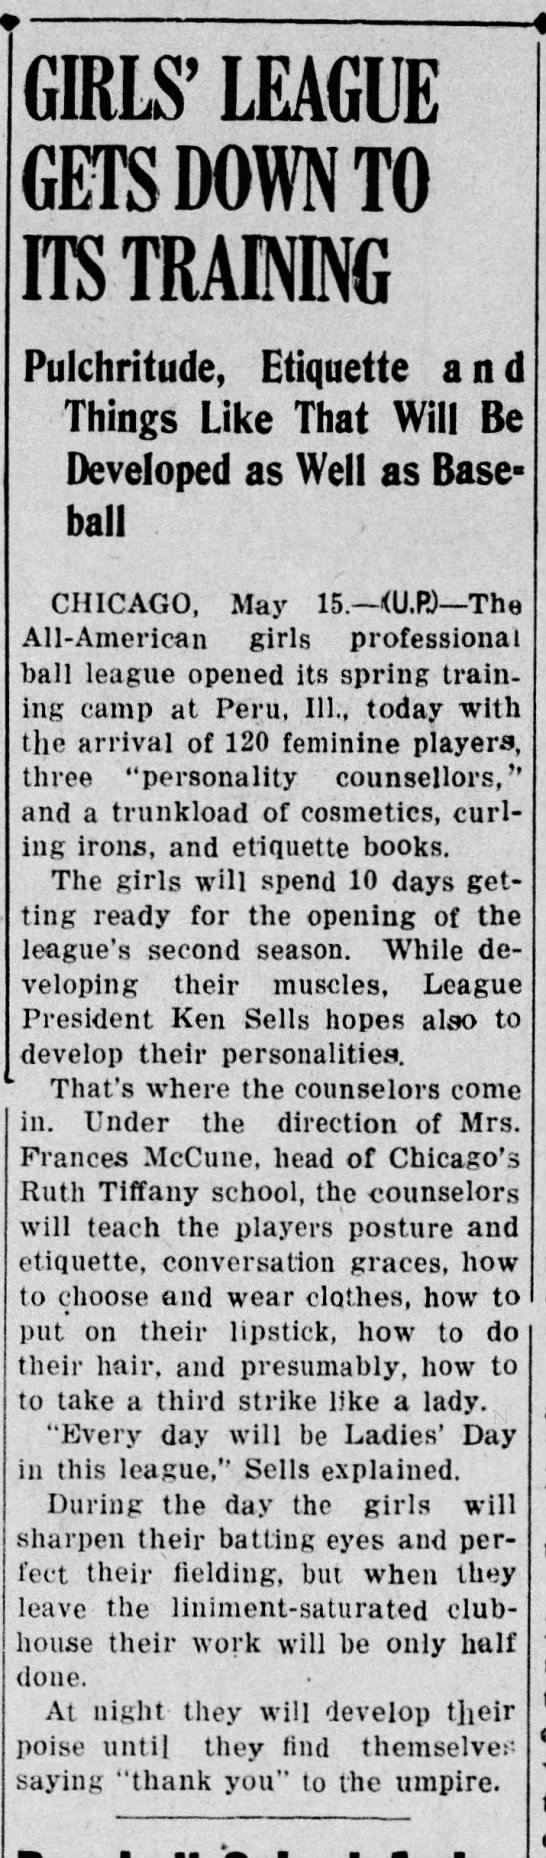 All-American Girls Professional Ball League spring training includes grooming and etiquette classes - GIRLS' LEAGUE GETS DOWN TO ITS TRAINING...